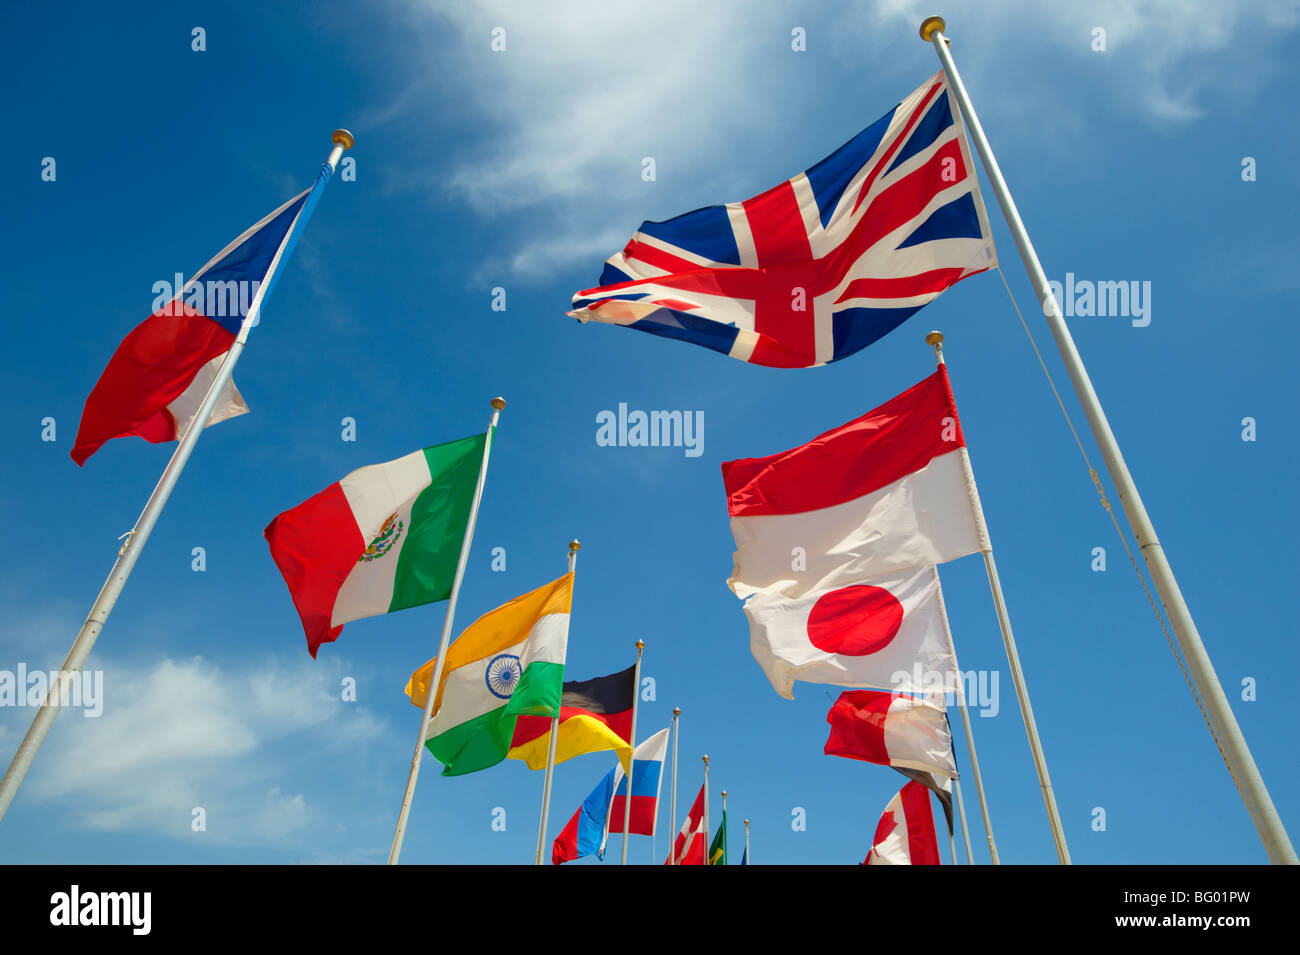 Union Jack and other world countries International flags flying - Stock Image